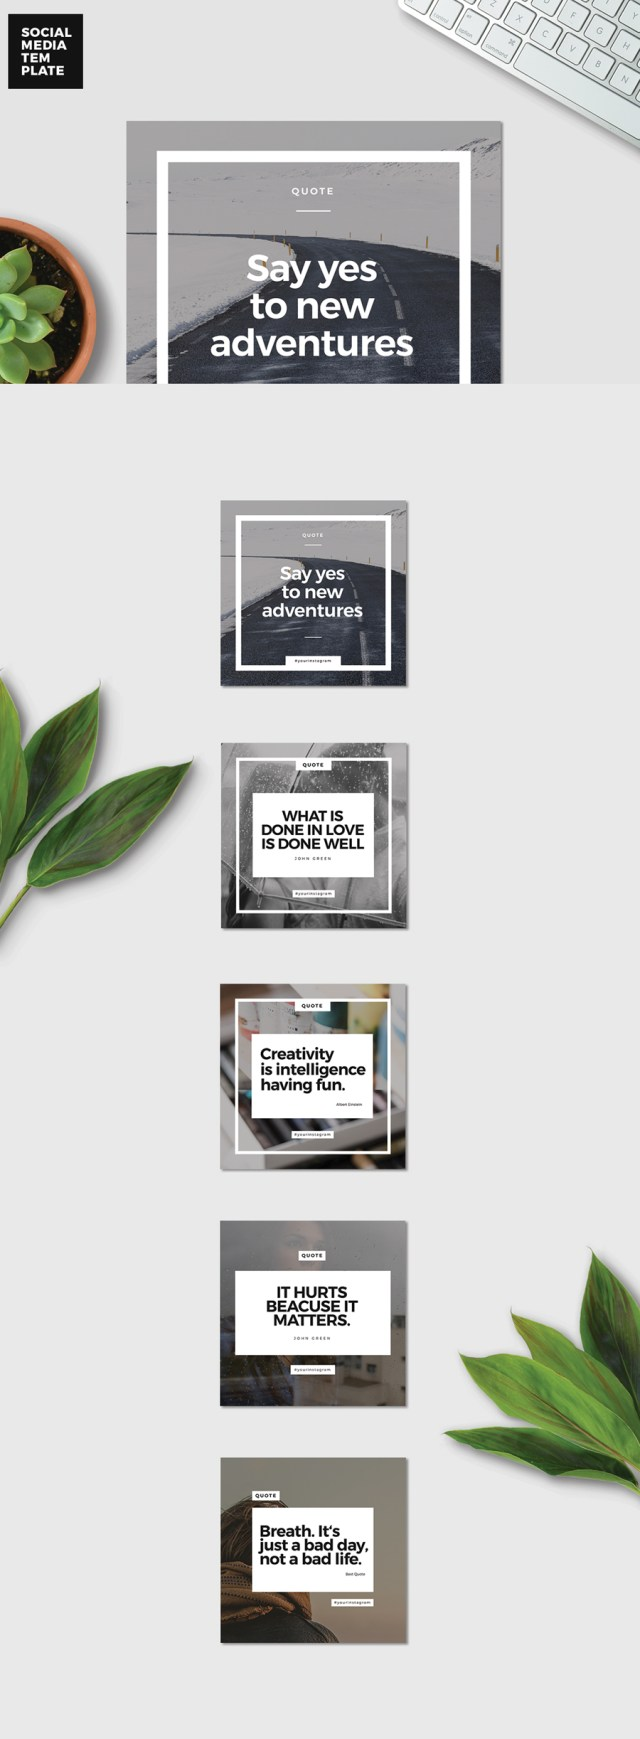 Free 5 Instagram Promotional Templates